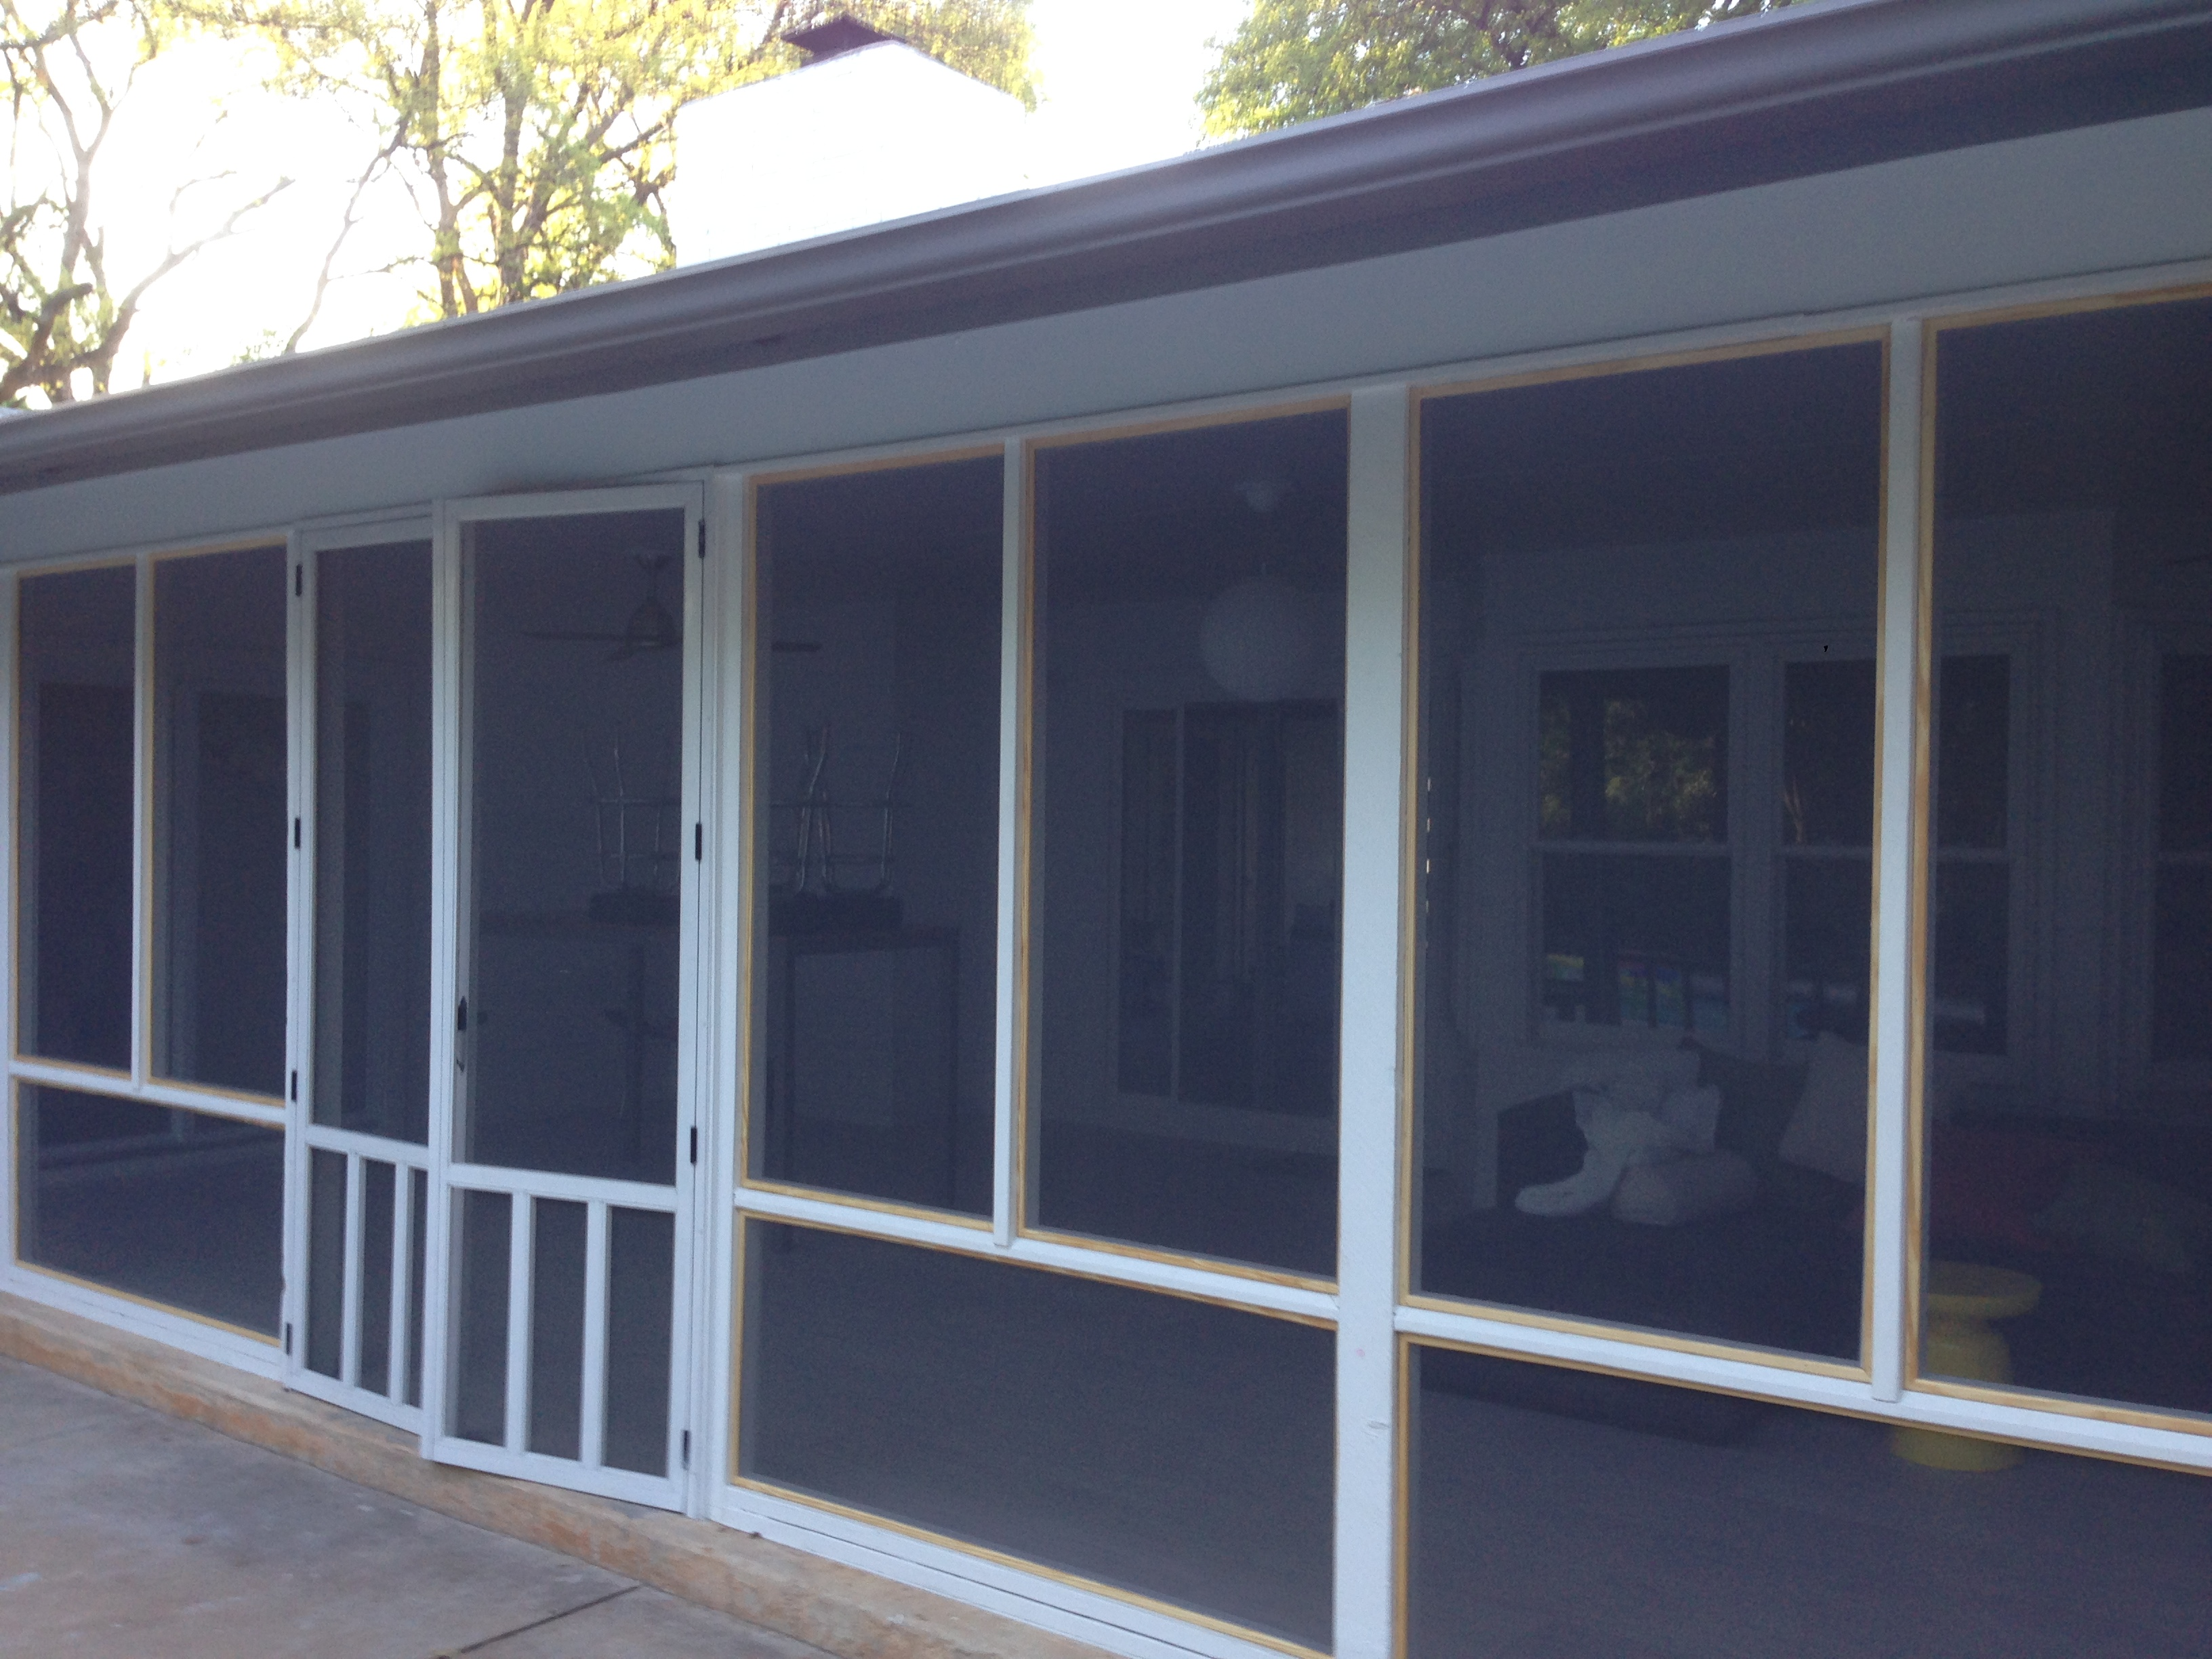 screens and insect screens screen solar screen window patio g